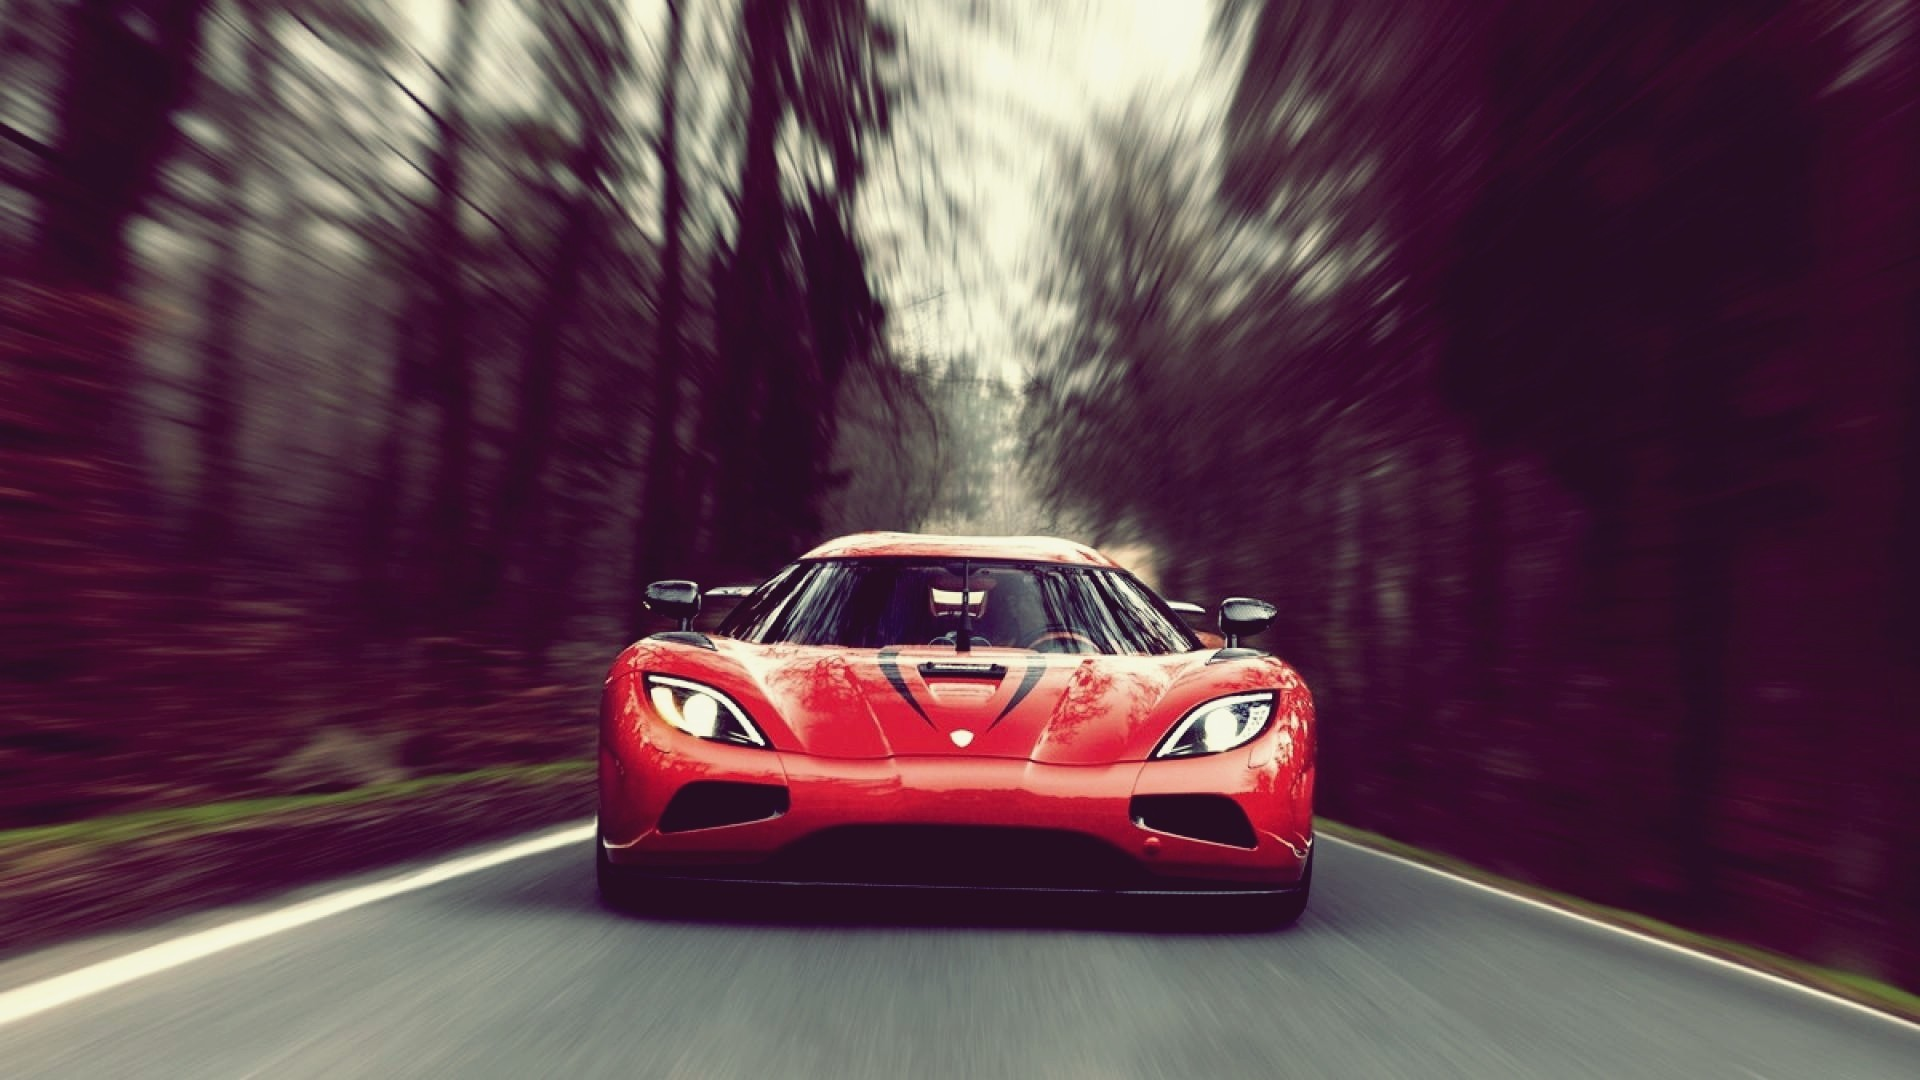 car, Motion Blur, Koenigsegg Agera R, Koenigsegg, Red Cars Wallpapers HD /  Desktop and Mobile Backgrounds